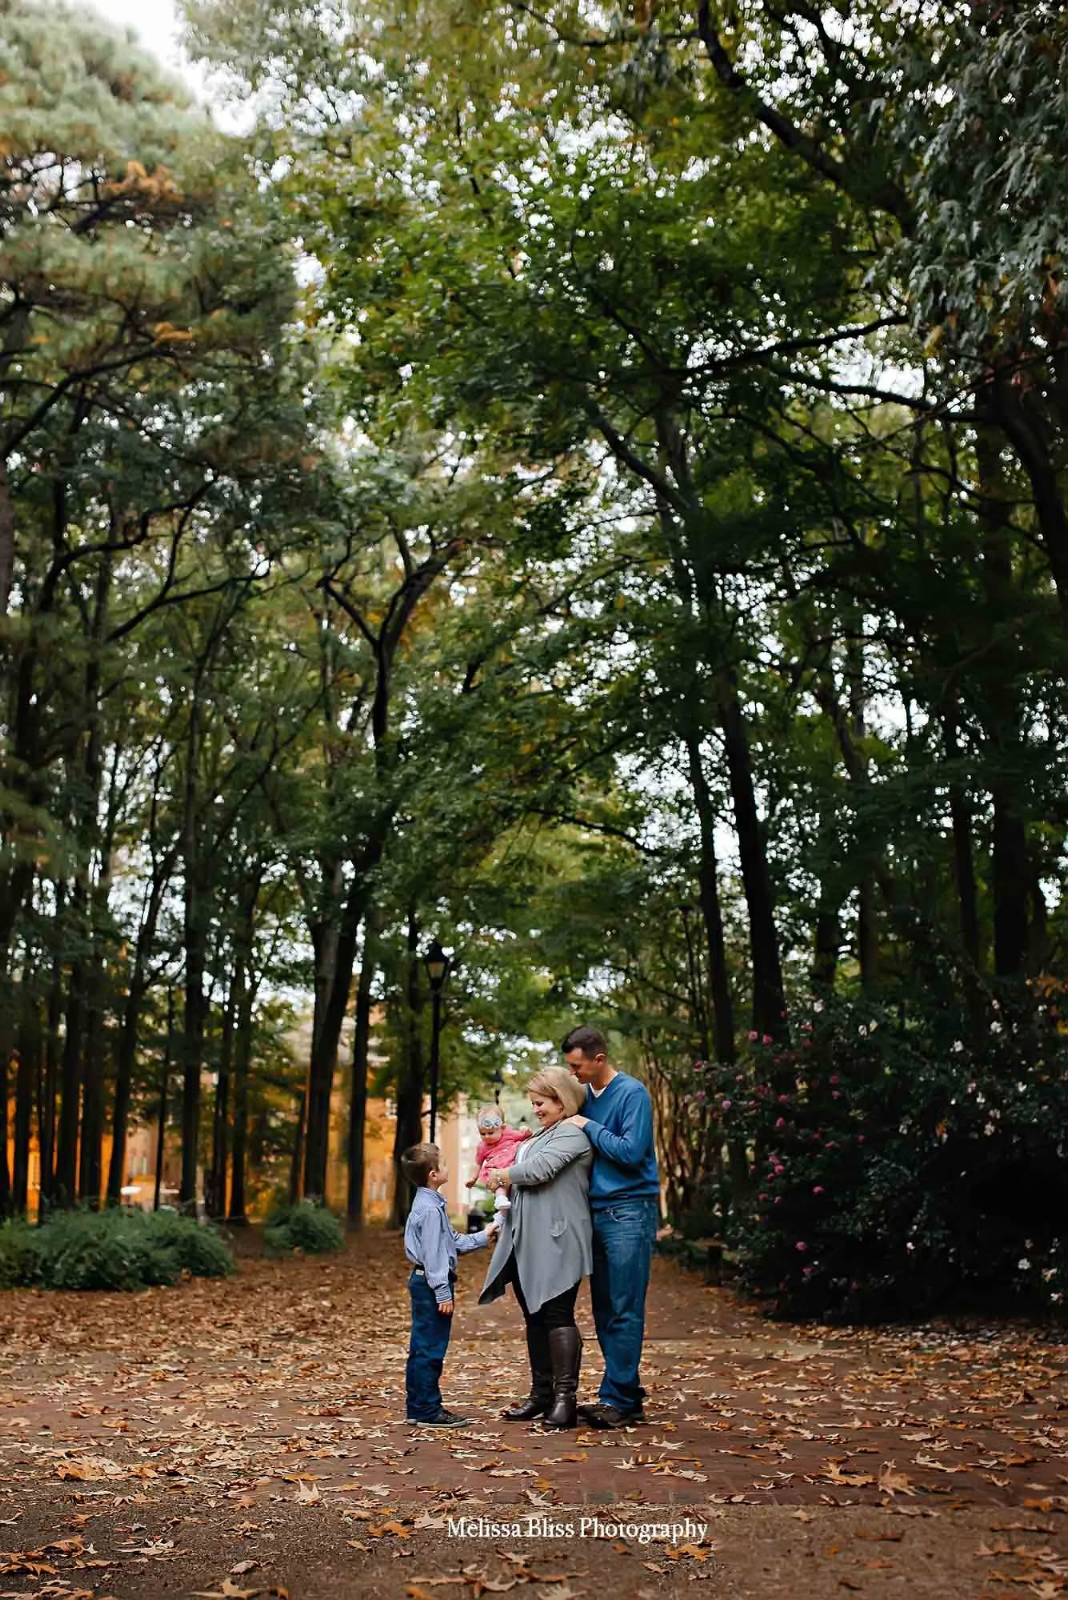 virginia-beach-family-photographer-family-lifestyle-photo-regent-university-campus-melissa-bliss-photography-fall-sessions.jpg